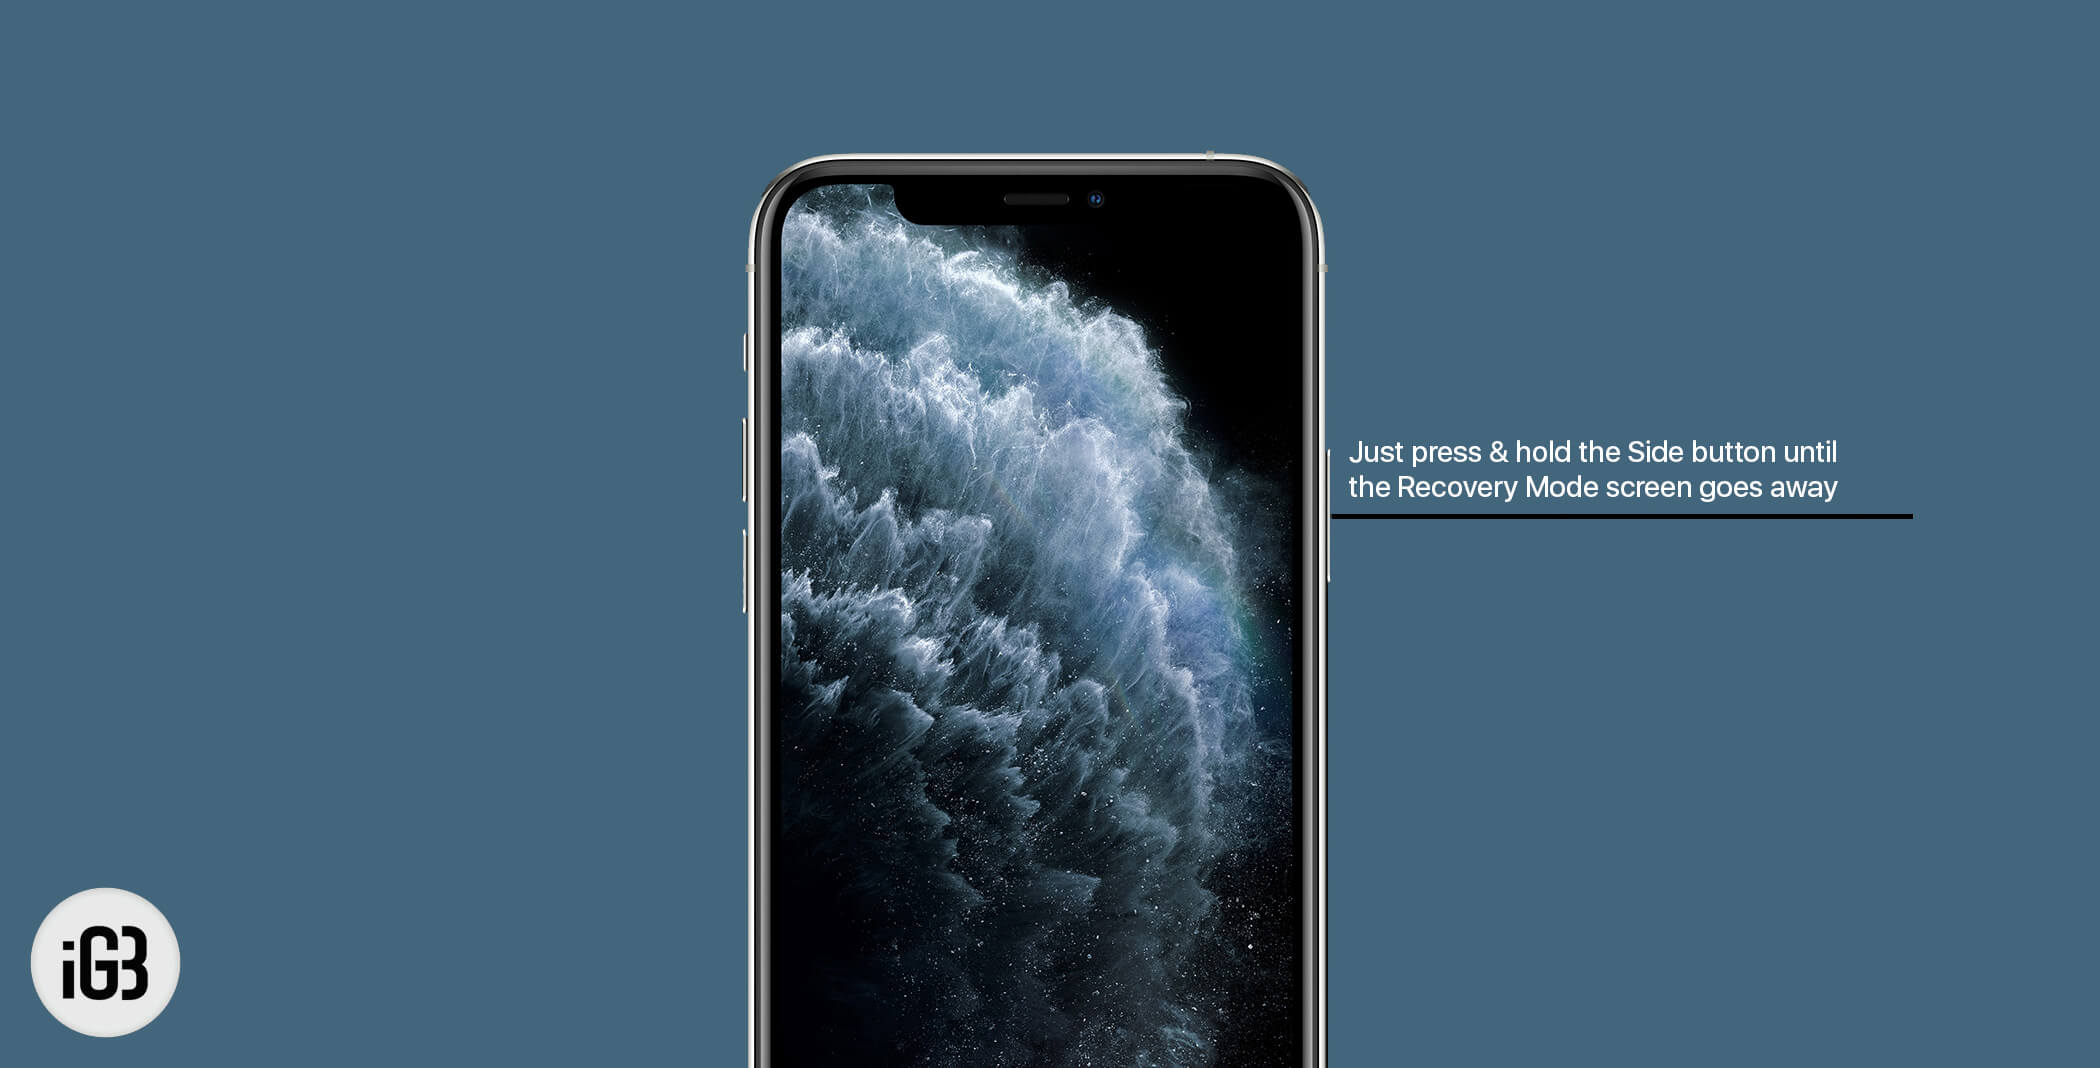 Exit Recovery Mode on iPhone 11 Pro Max, 11 Pro, and iPhone 11